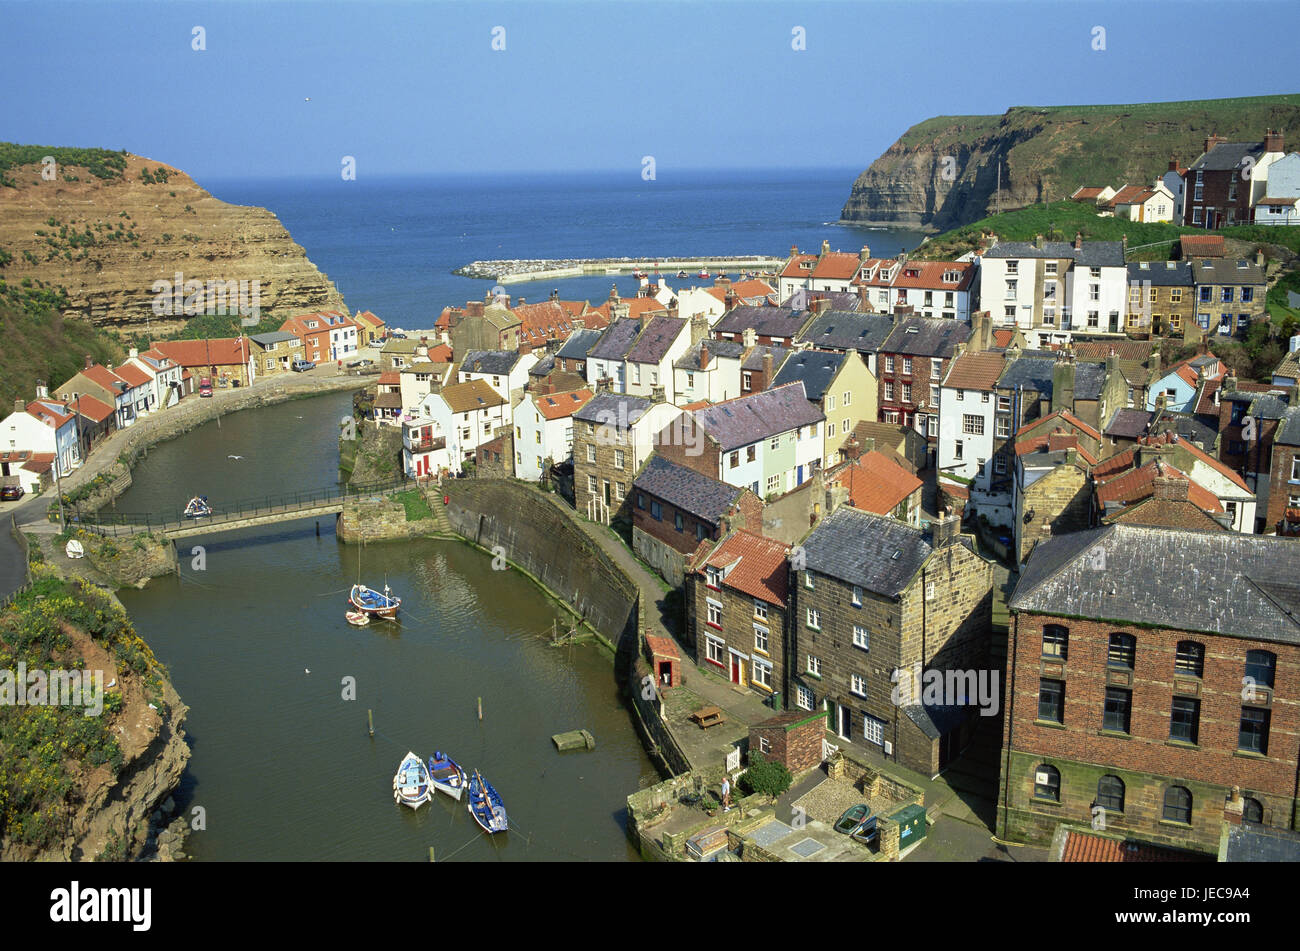 Great Britain, England, North Yorkshire, Staithes, town view, river, bridge, boats, Europe, destination, place of - Stock Image